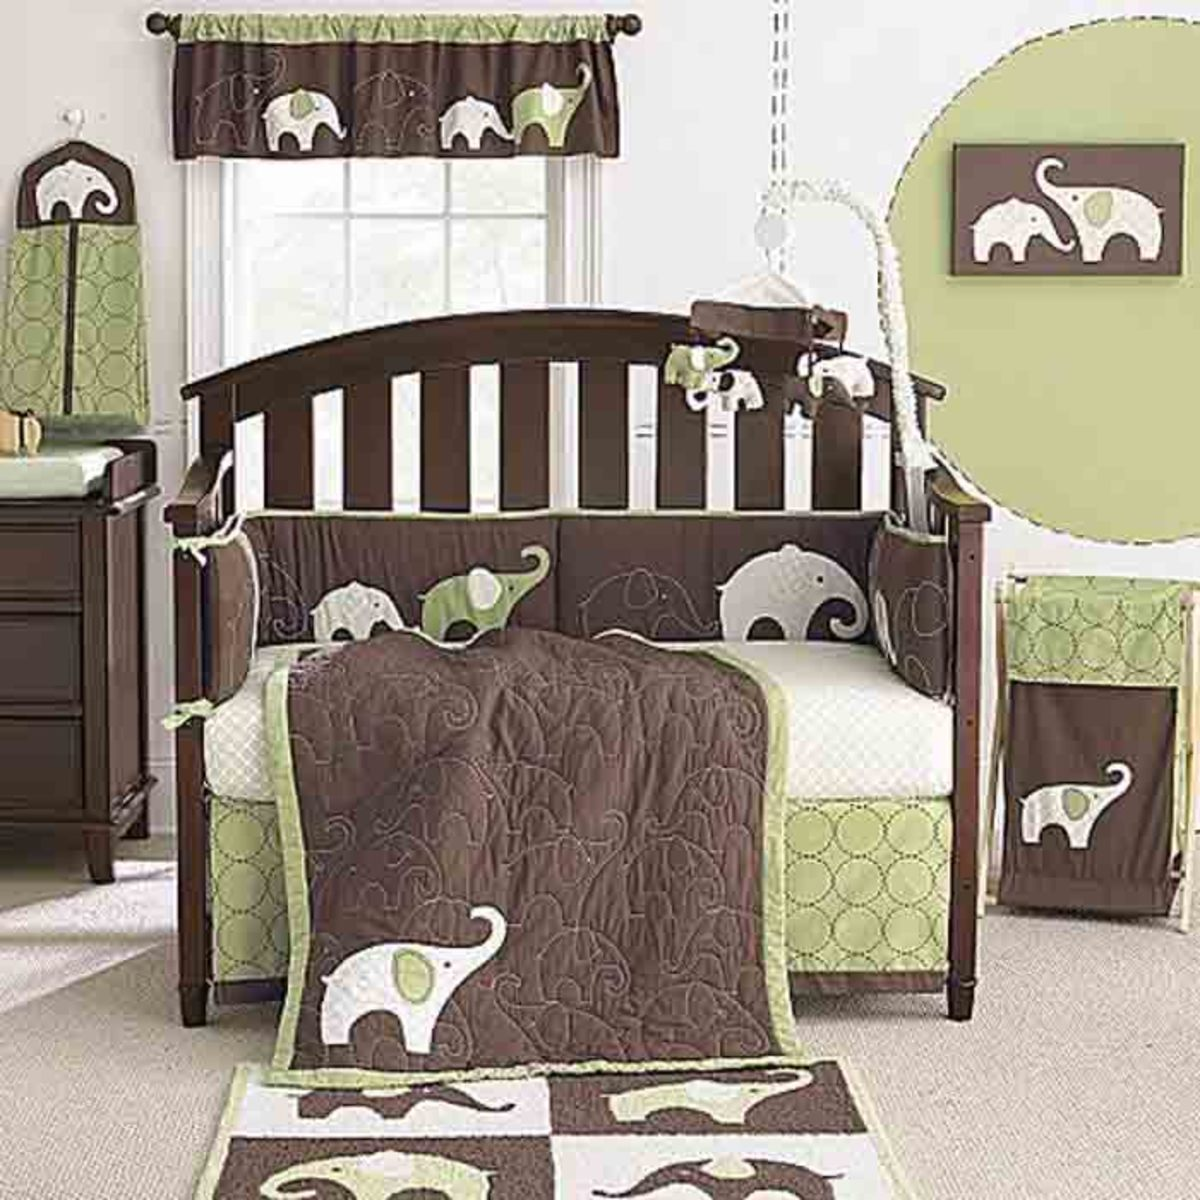 Decorating ideas for a baby boy nursery for Baby rooms decoration ideas